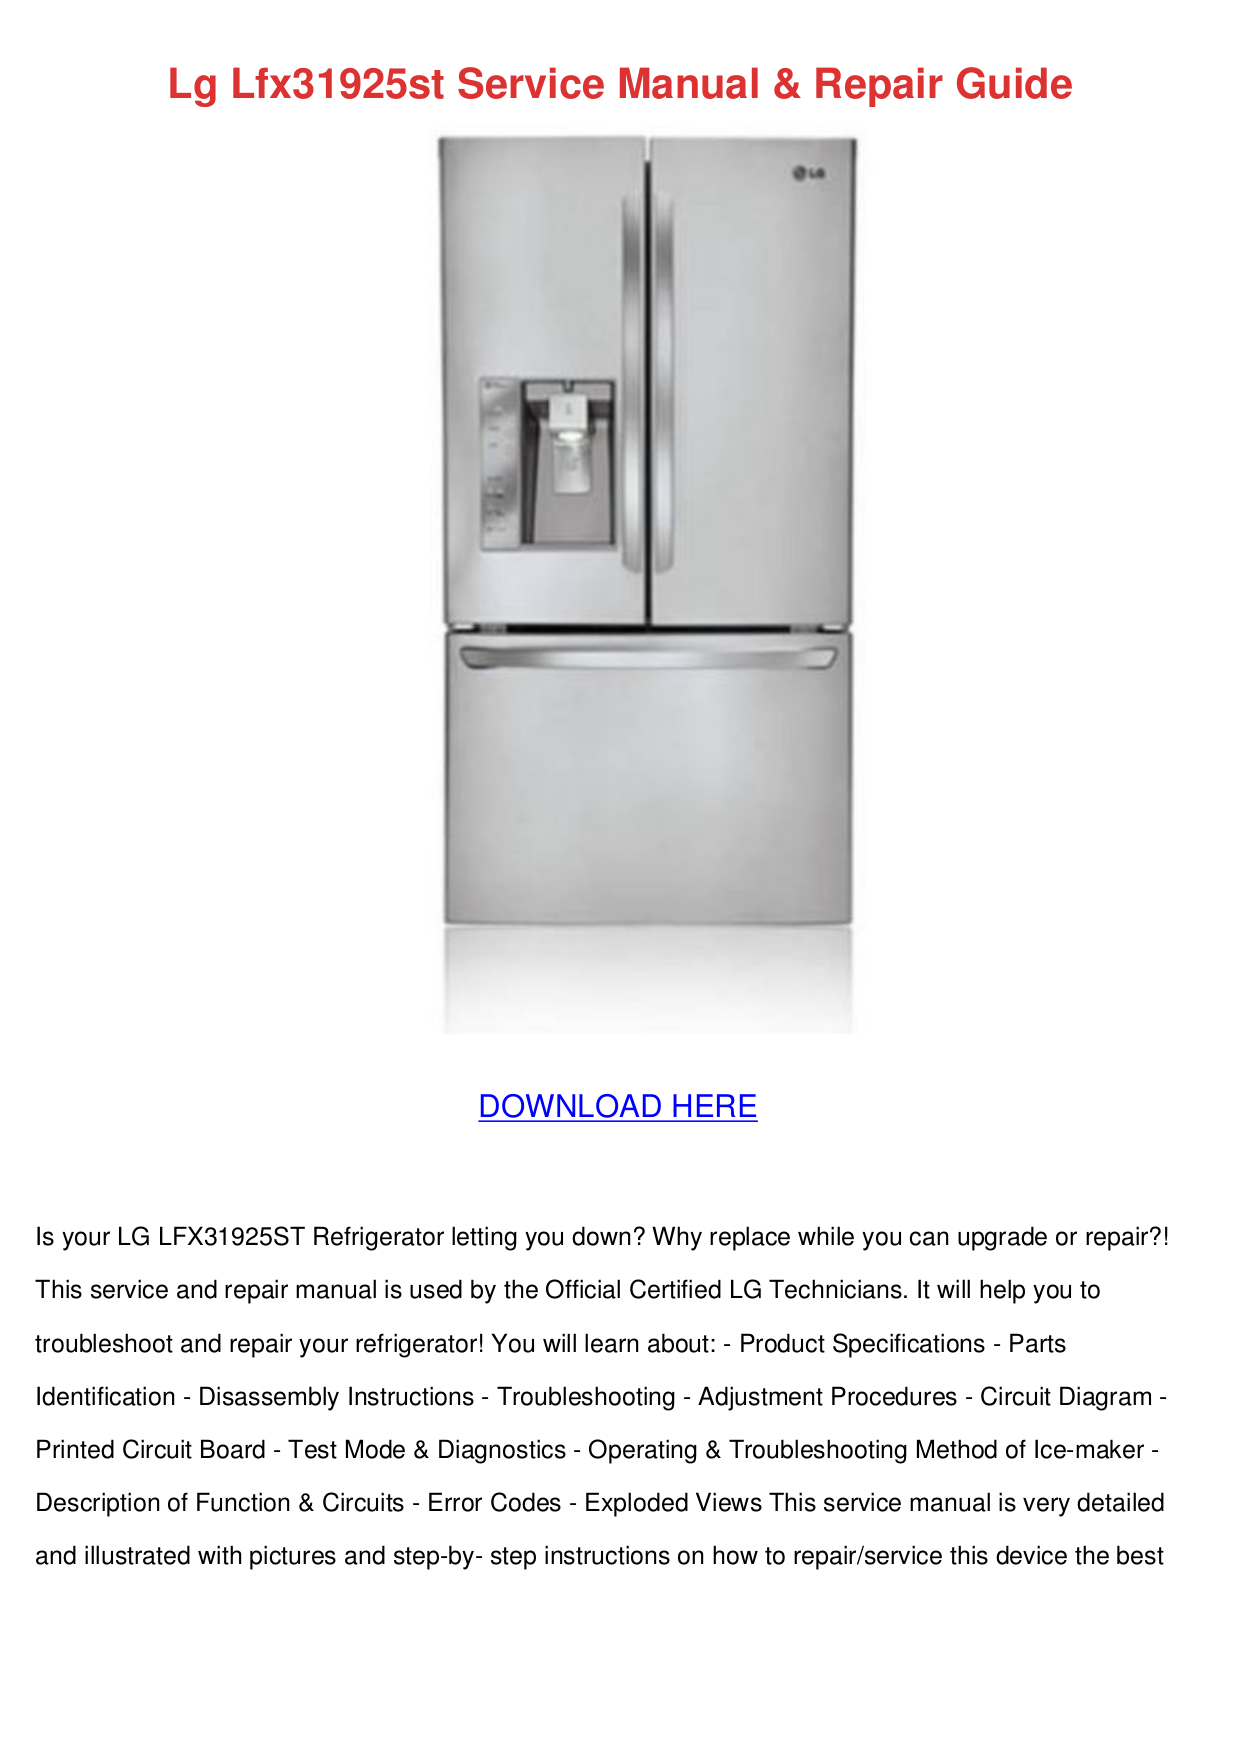 download free pdf for lg lfx31925st refrigerator manual rh umlib com lg refrigerator manual lfxc24726s lg refrigerator manual lfx31925st